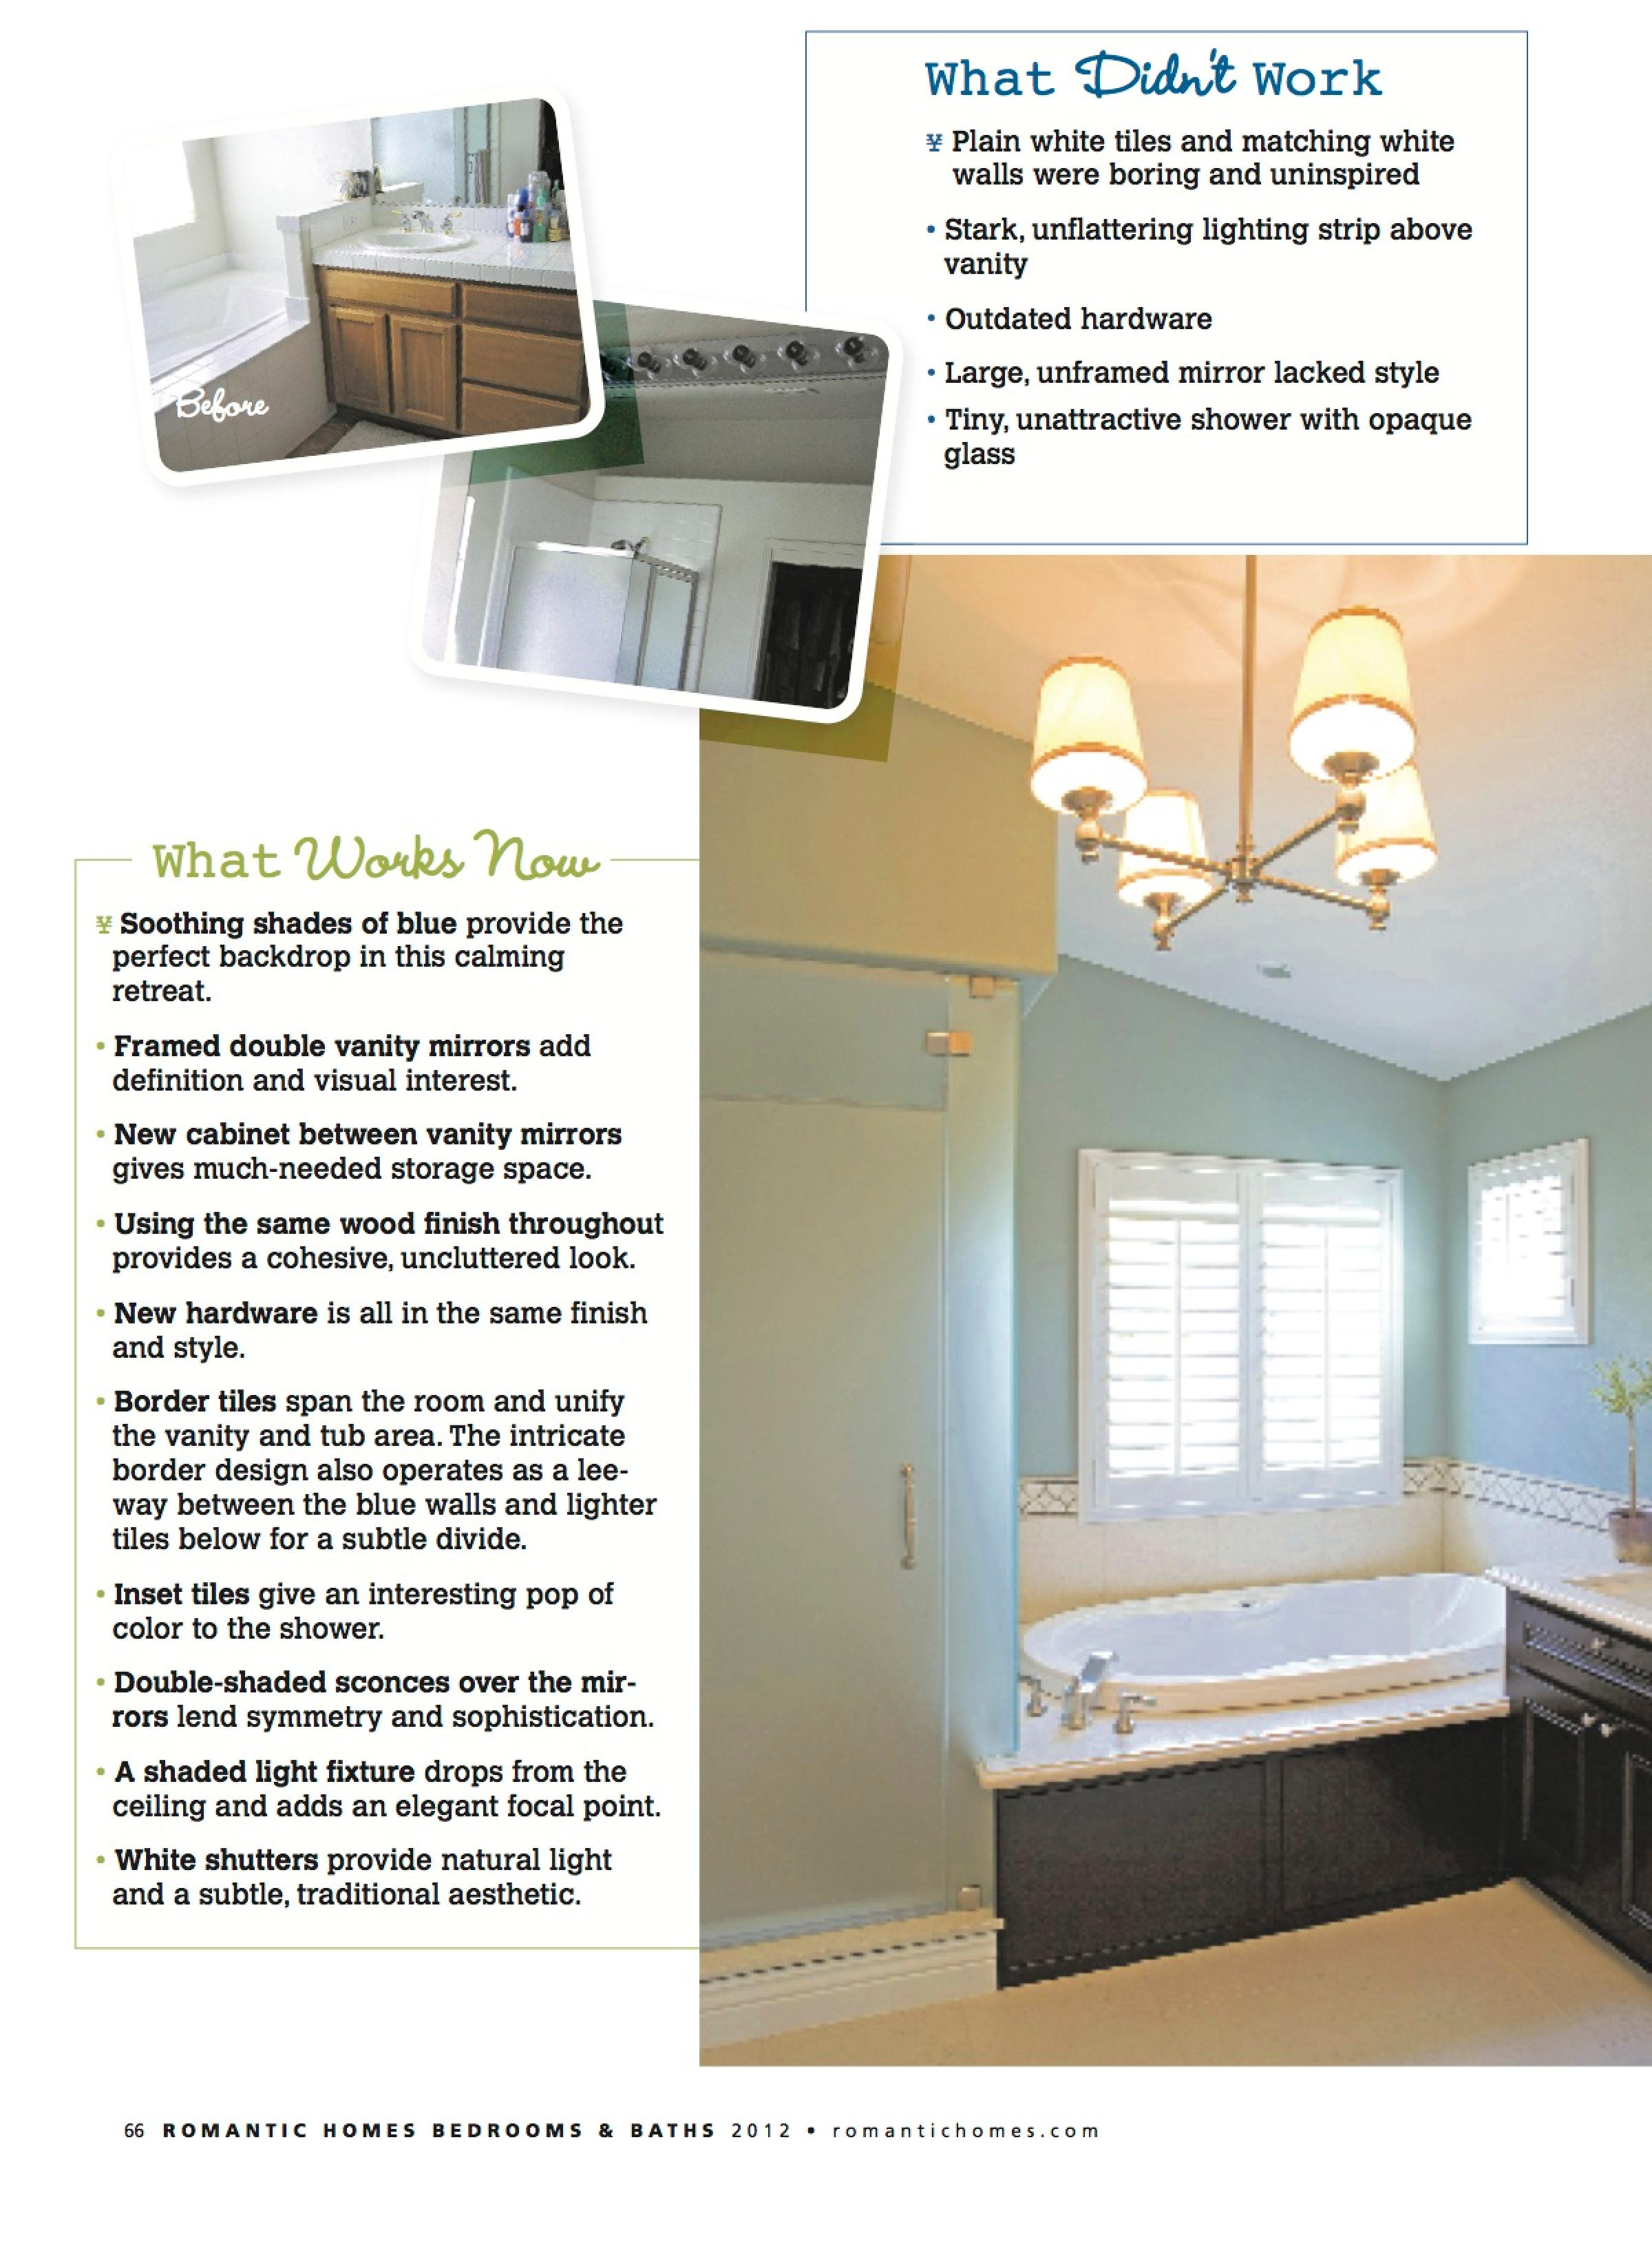 11-press_-_bedrooms_and_baths_magazine-page-003